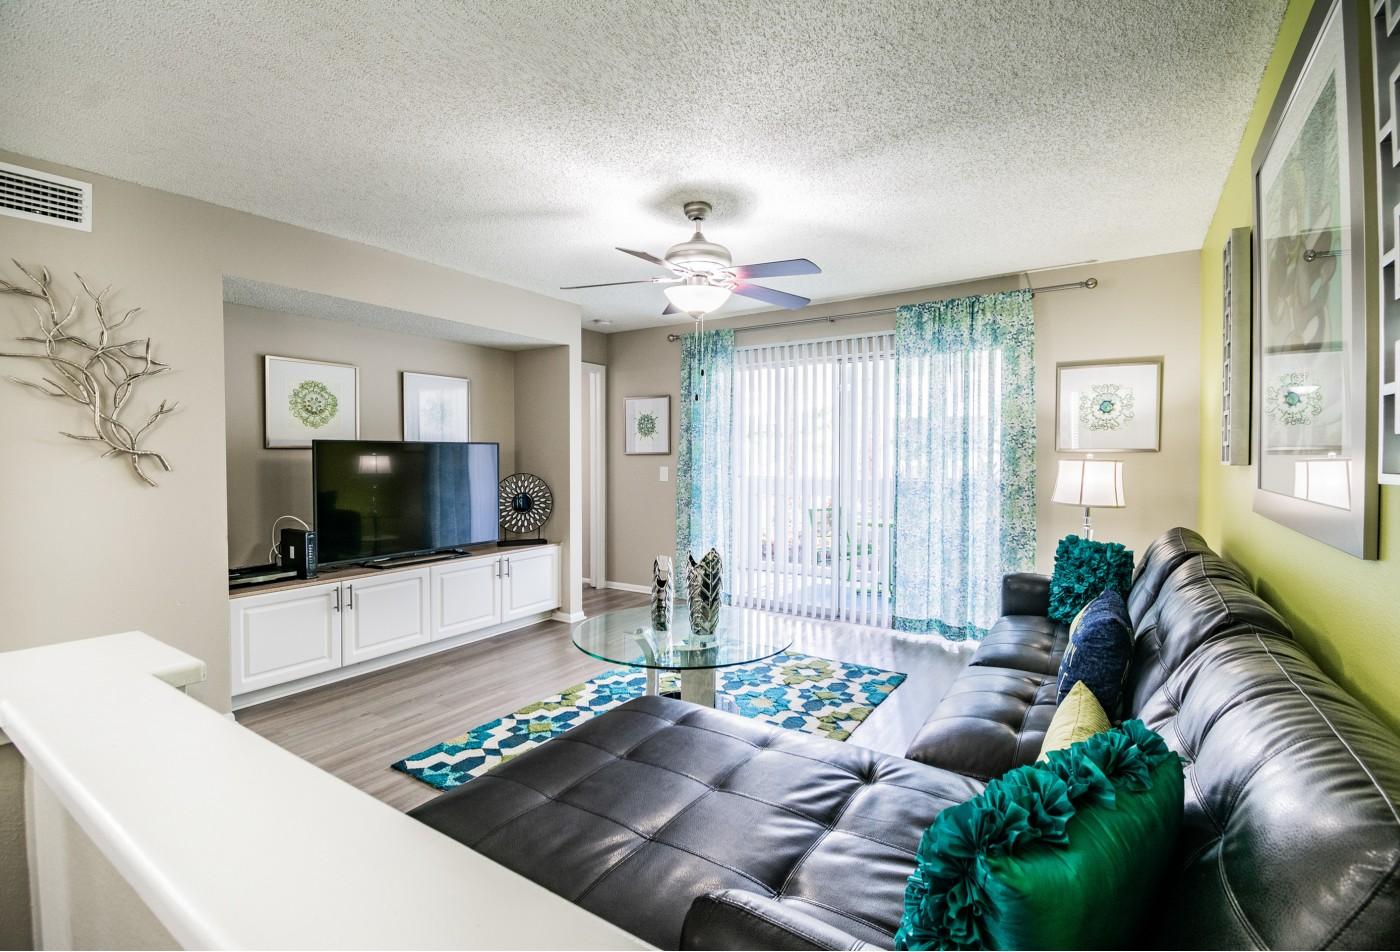 Furnished model living area with tv and decor